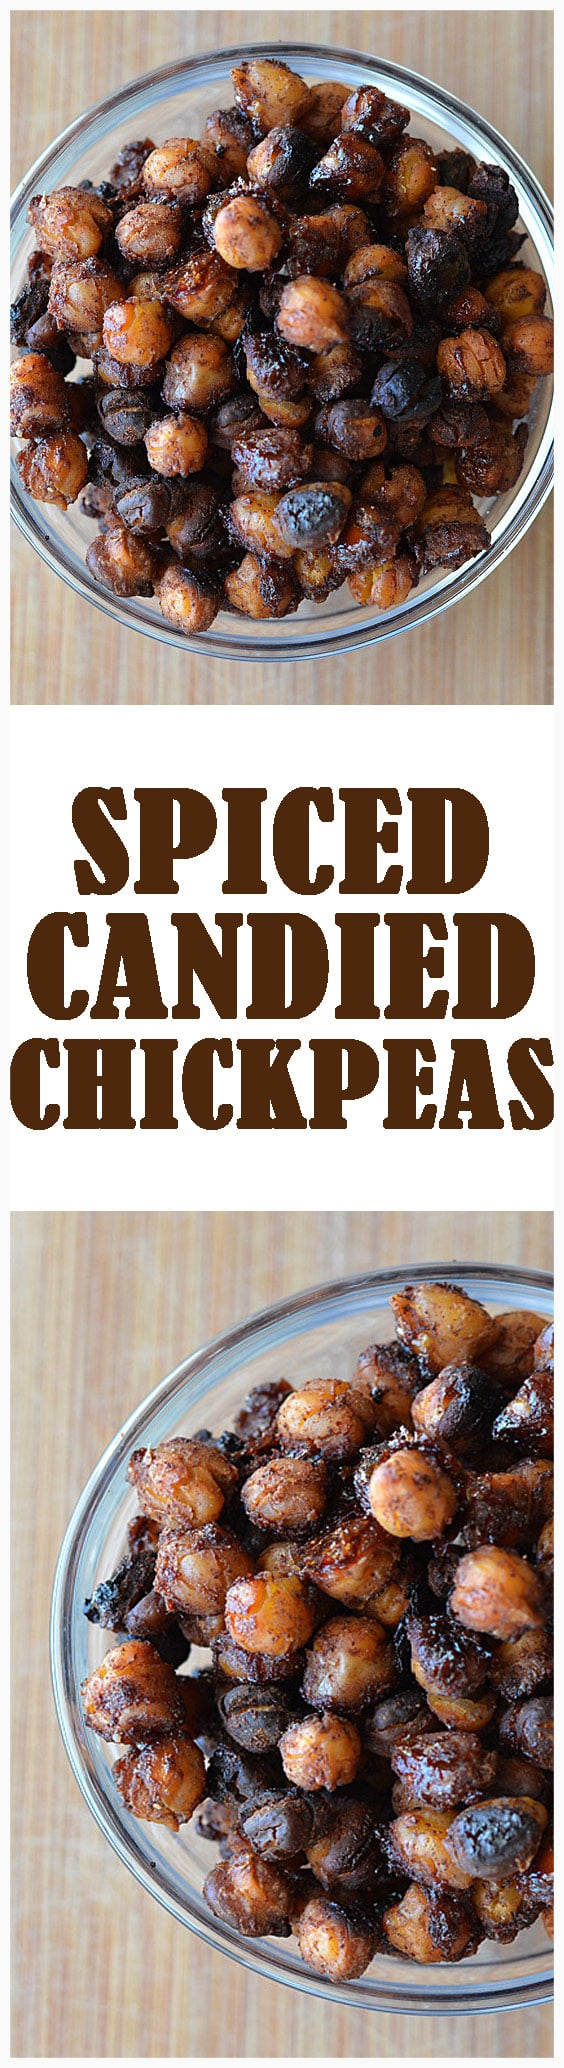 Candied Chickpeas